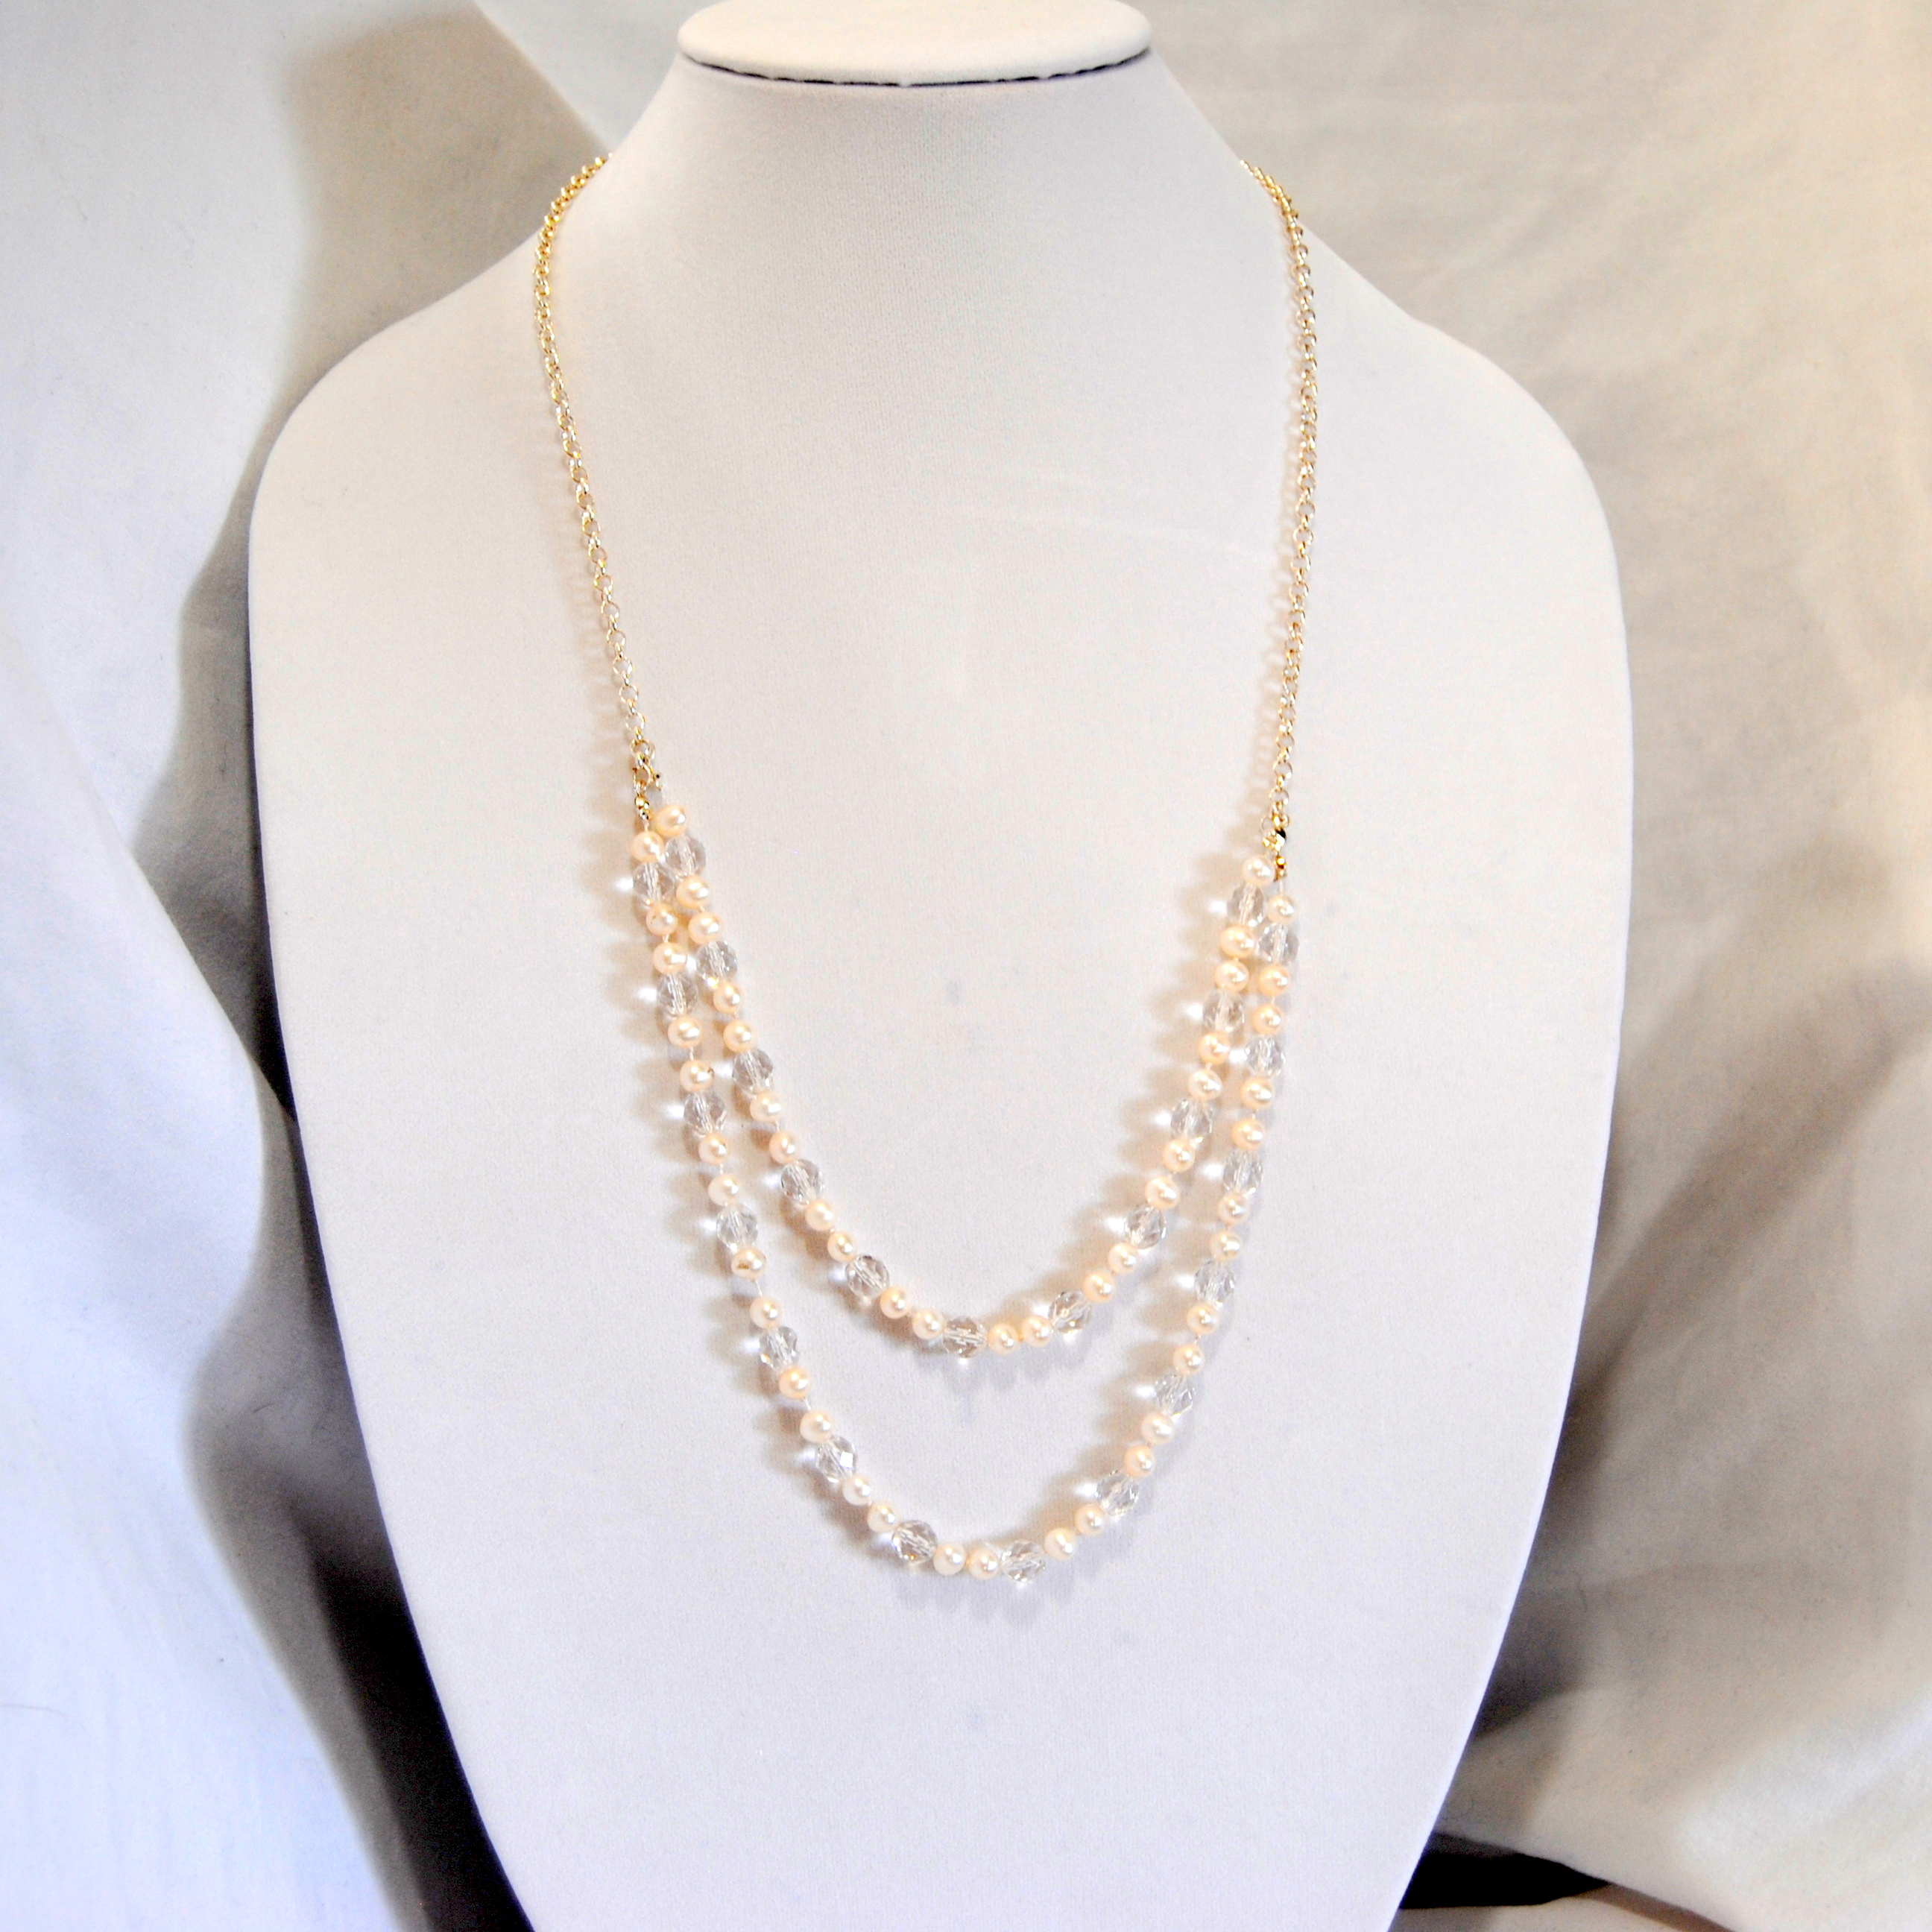 two strand white pearl necklace with clear firepolished beads | bexbernard.com